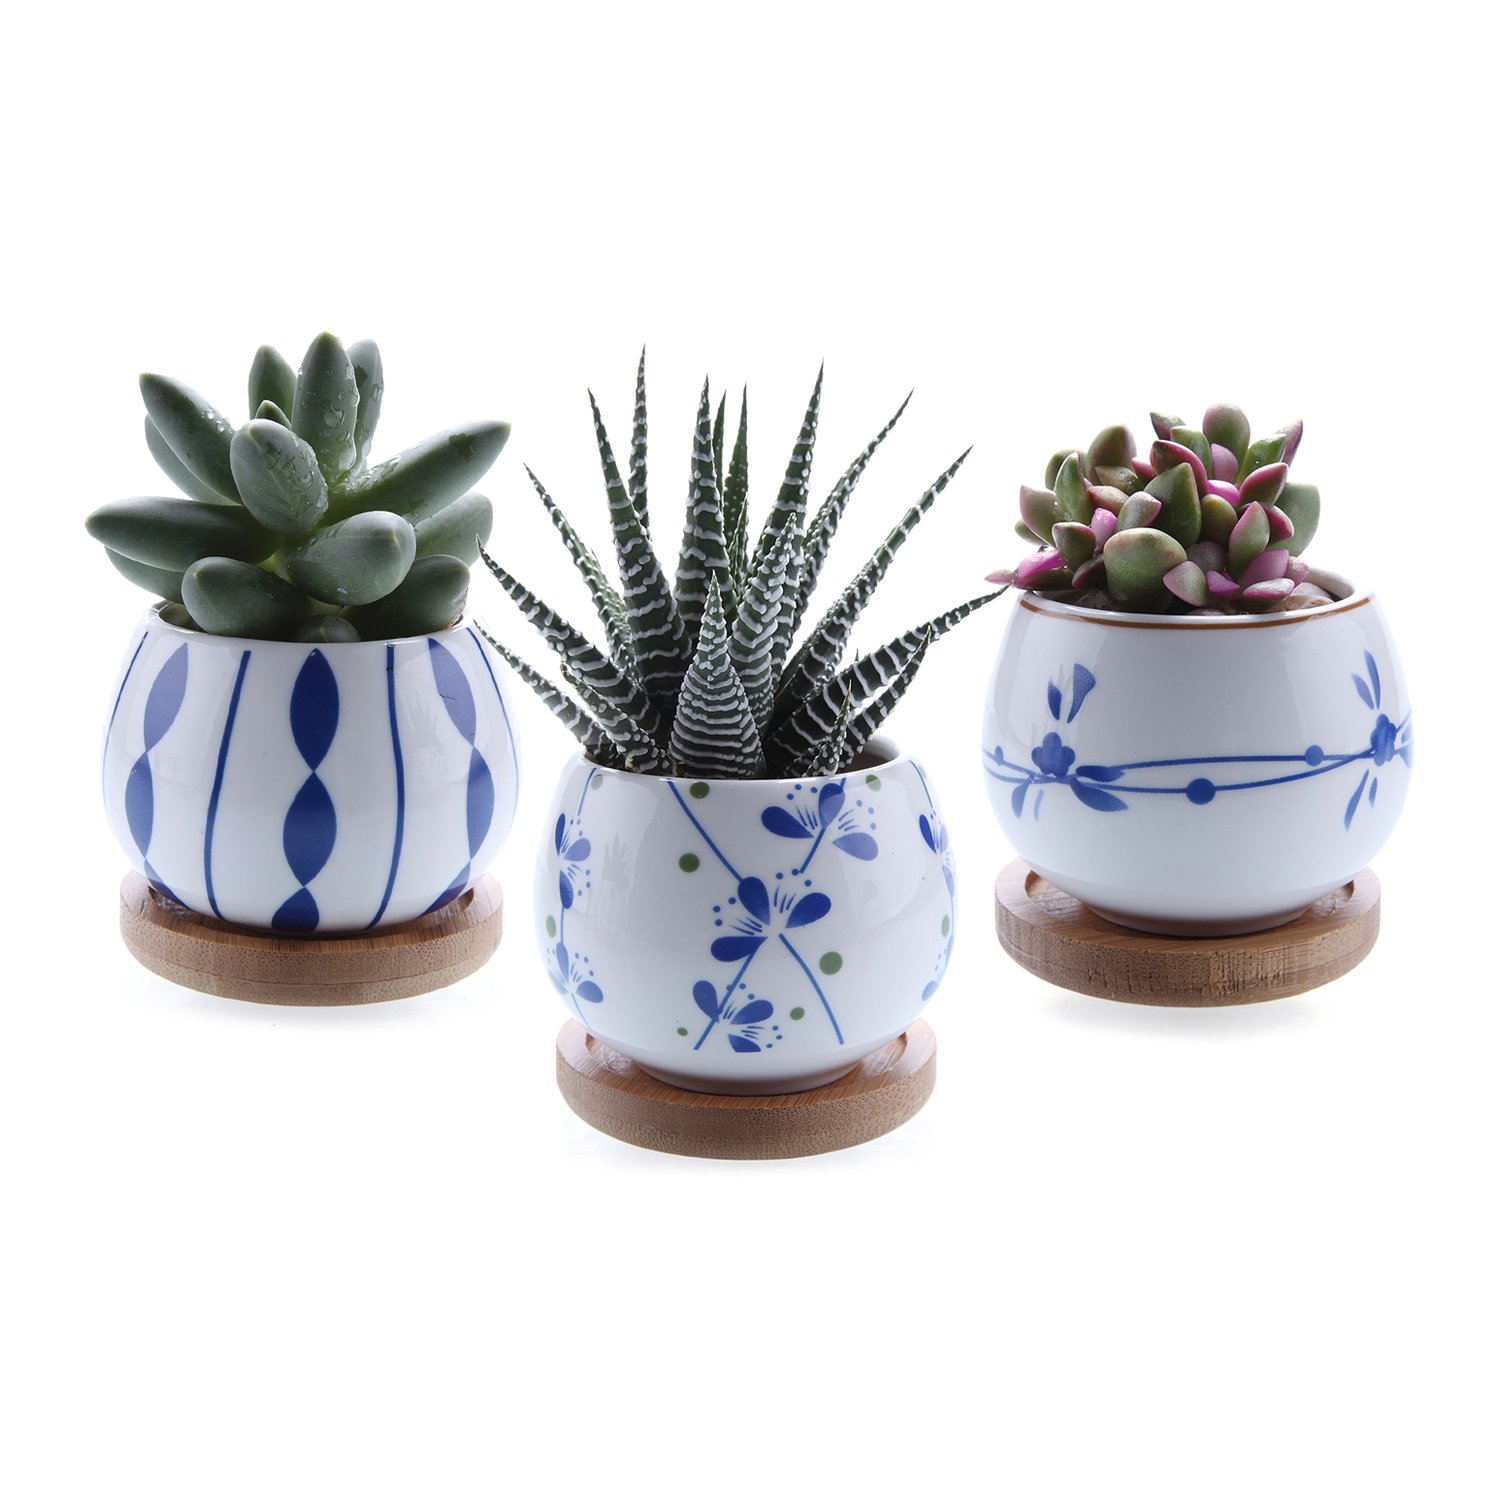 T4U 2.7 Inch Ceramic Succulent Plant Pot Cactus Plant Pot Flower Pot Container Planter with Bamboo Tray Set of 3 by T4U